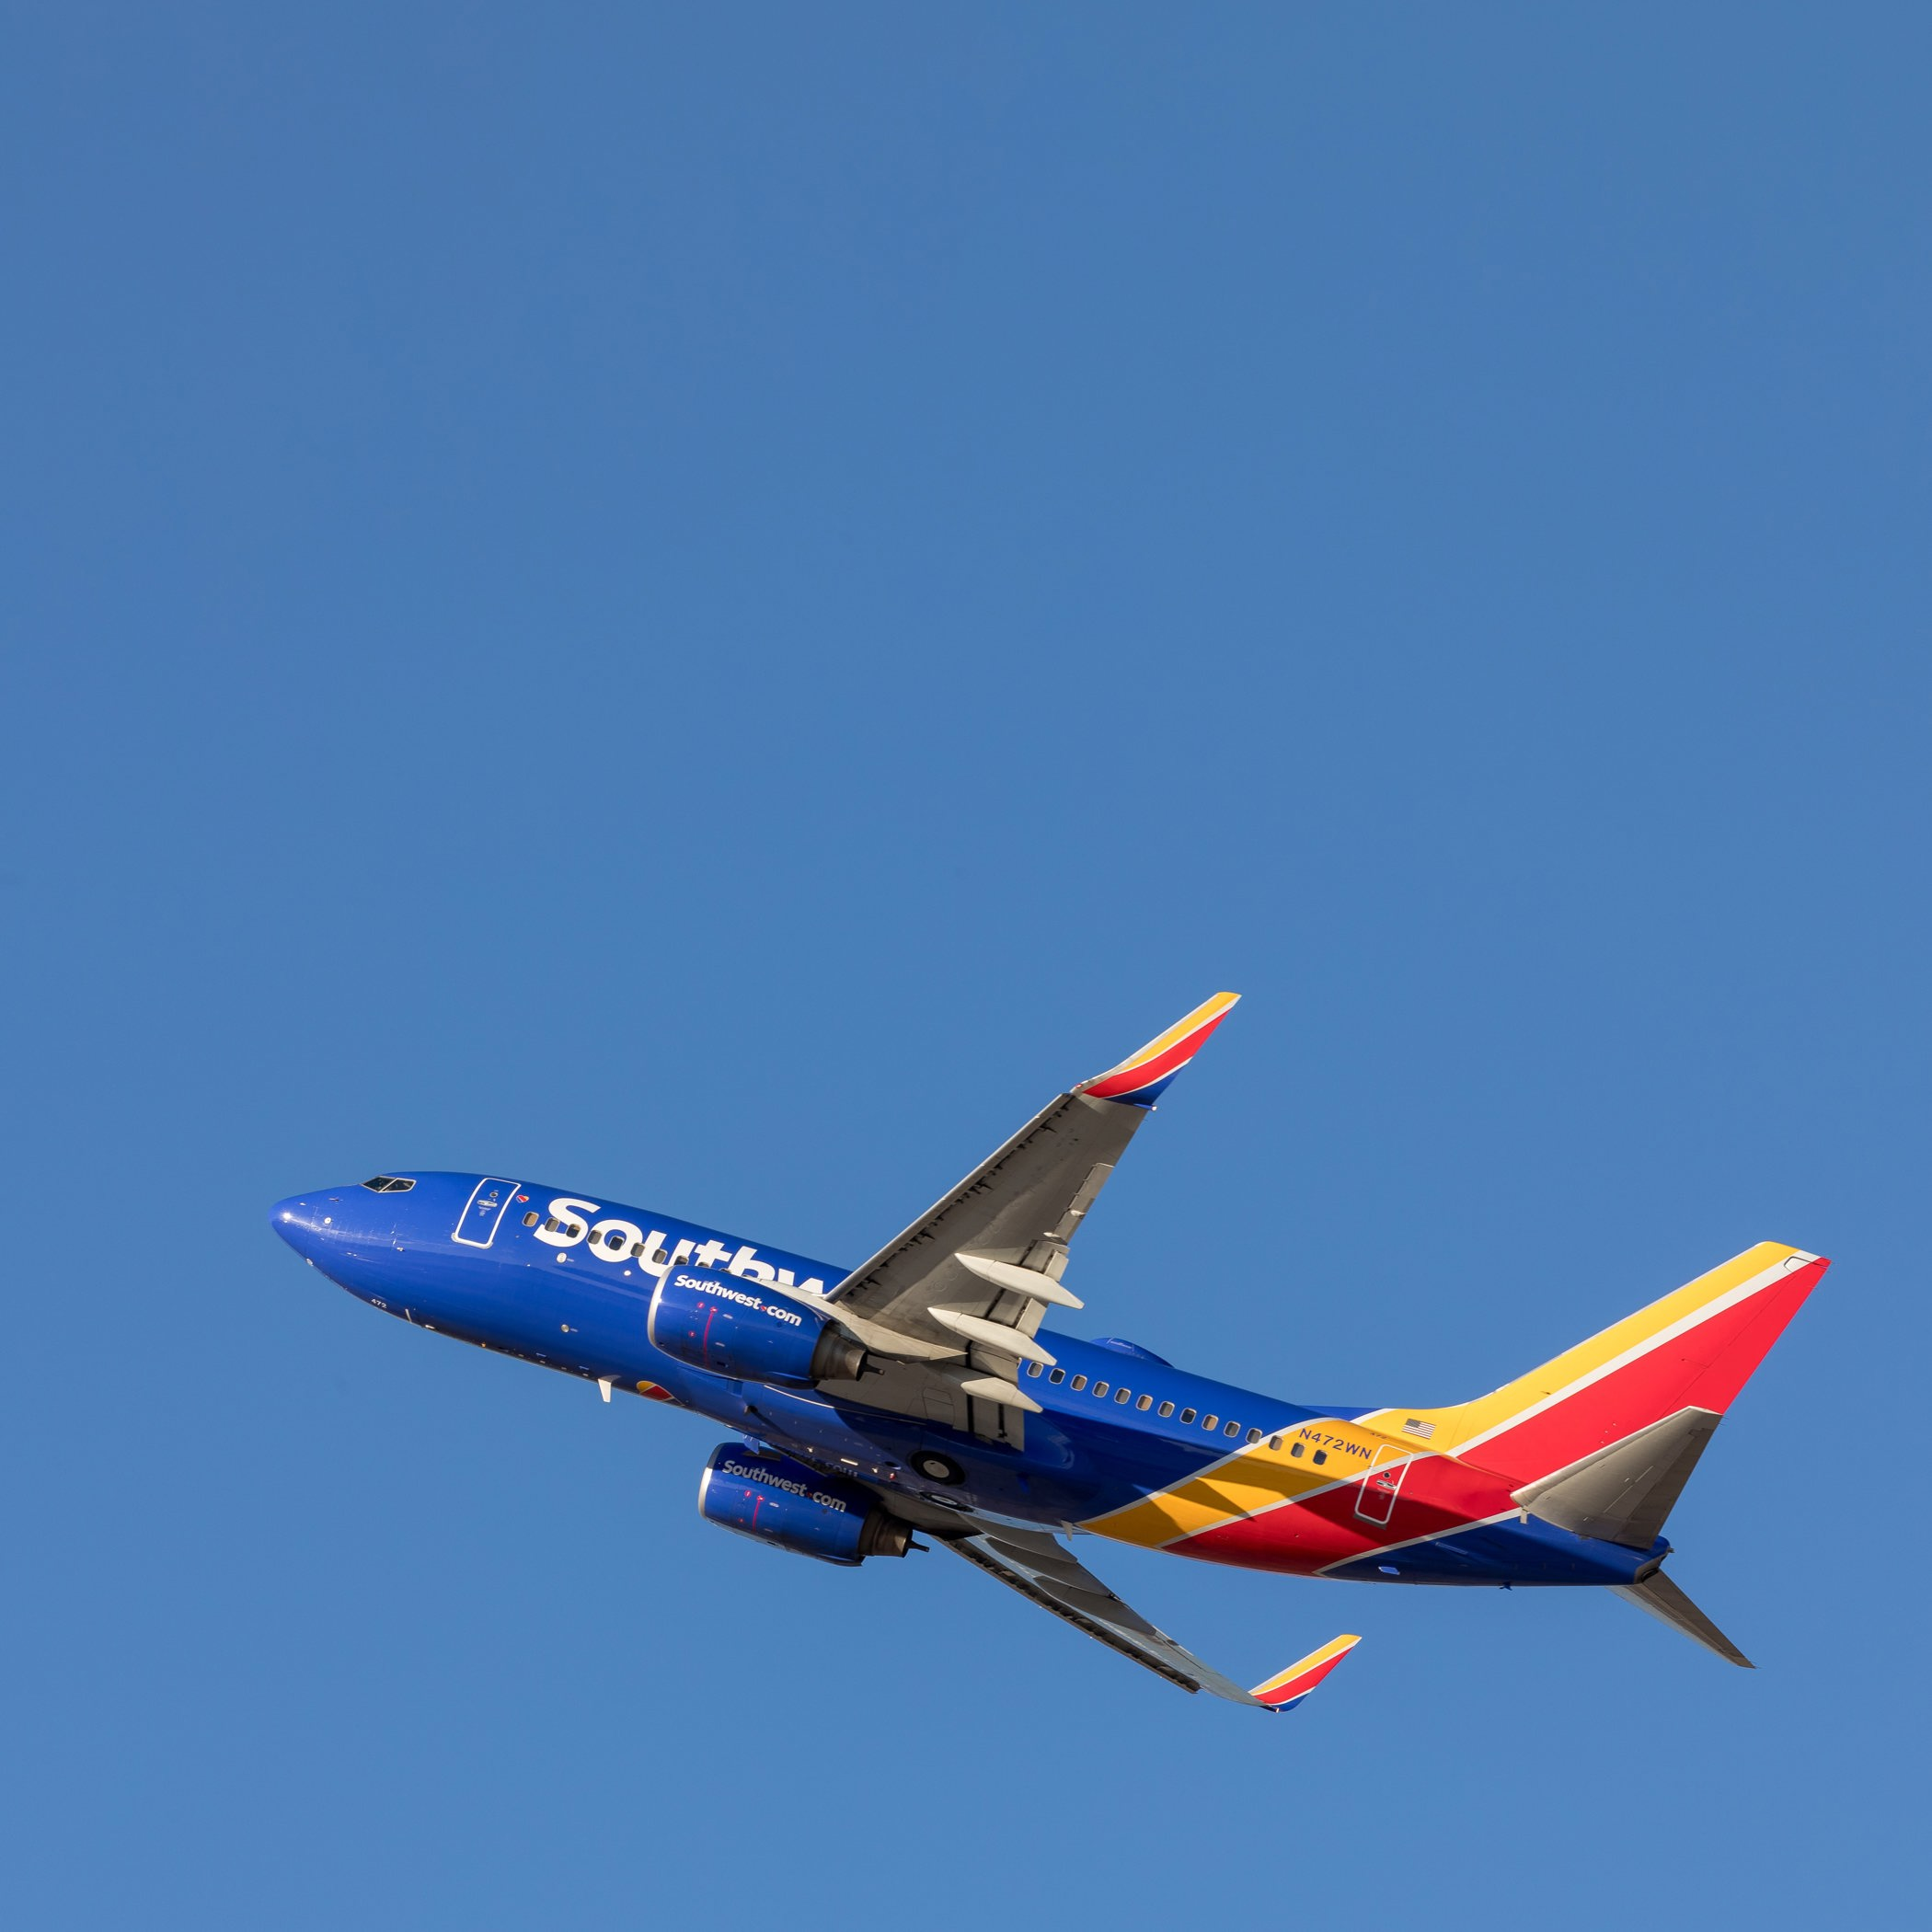 Southwest LUV stock news and analysis